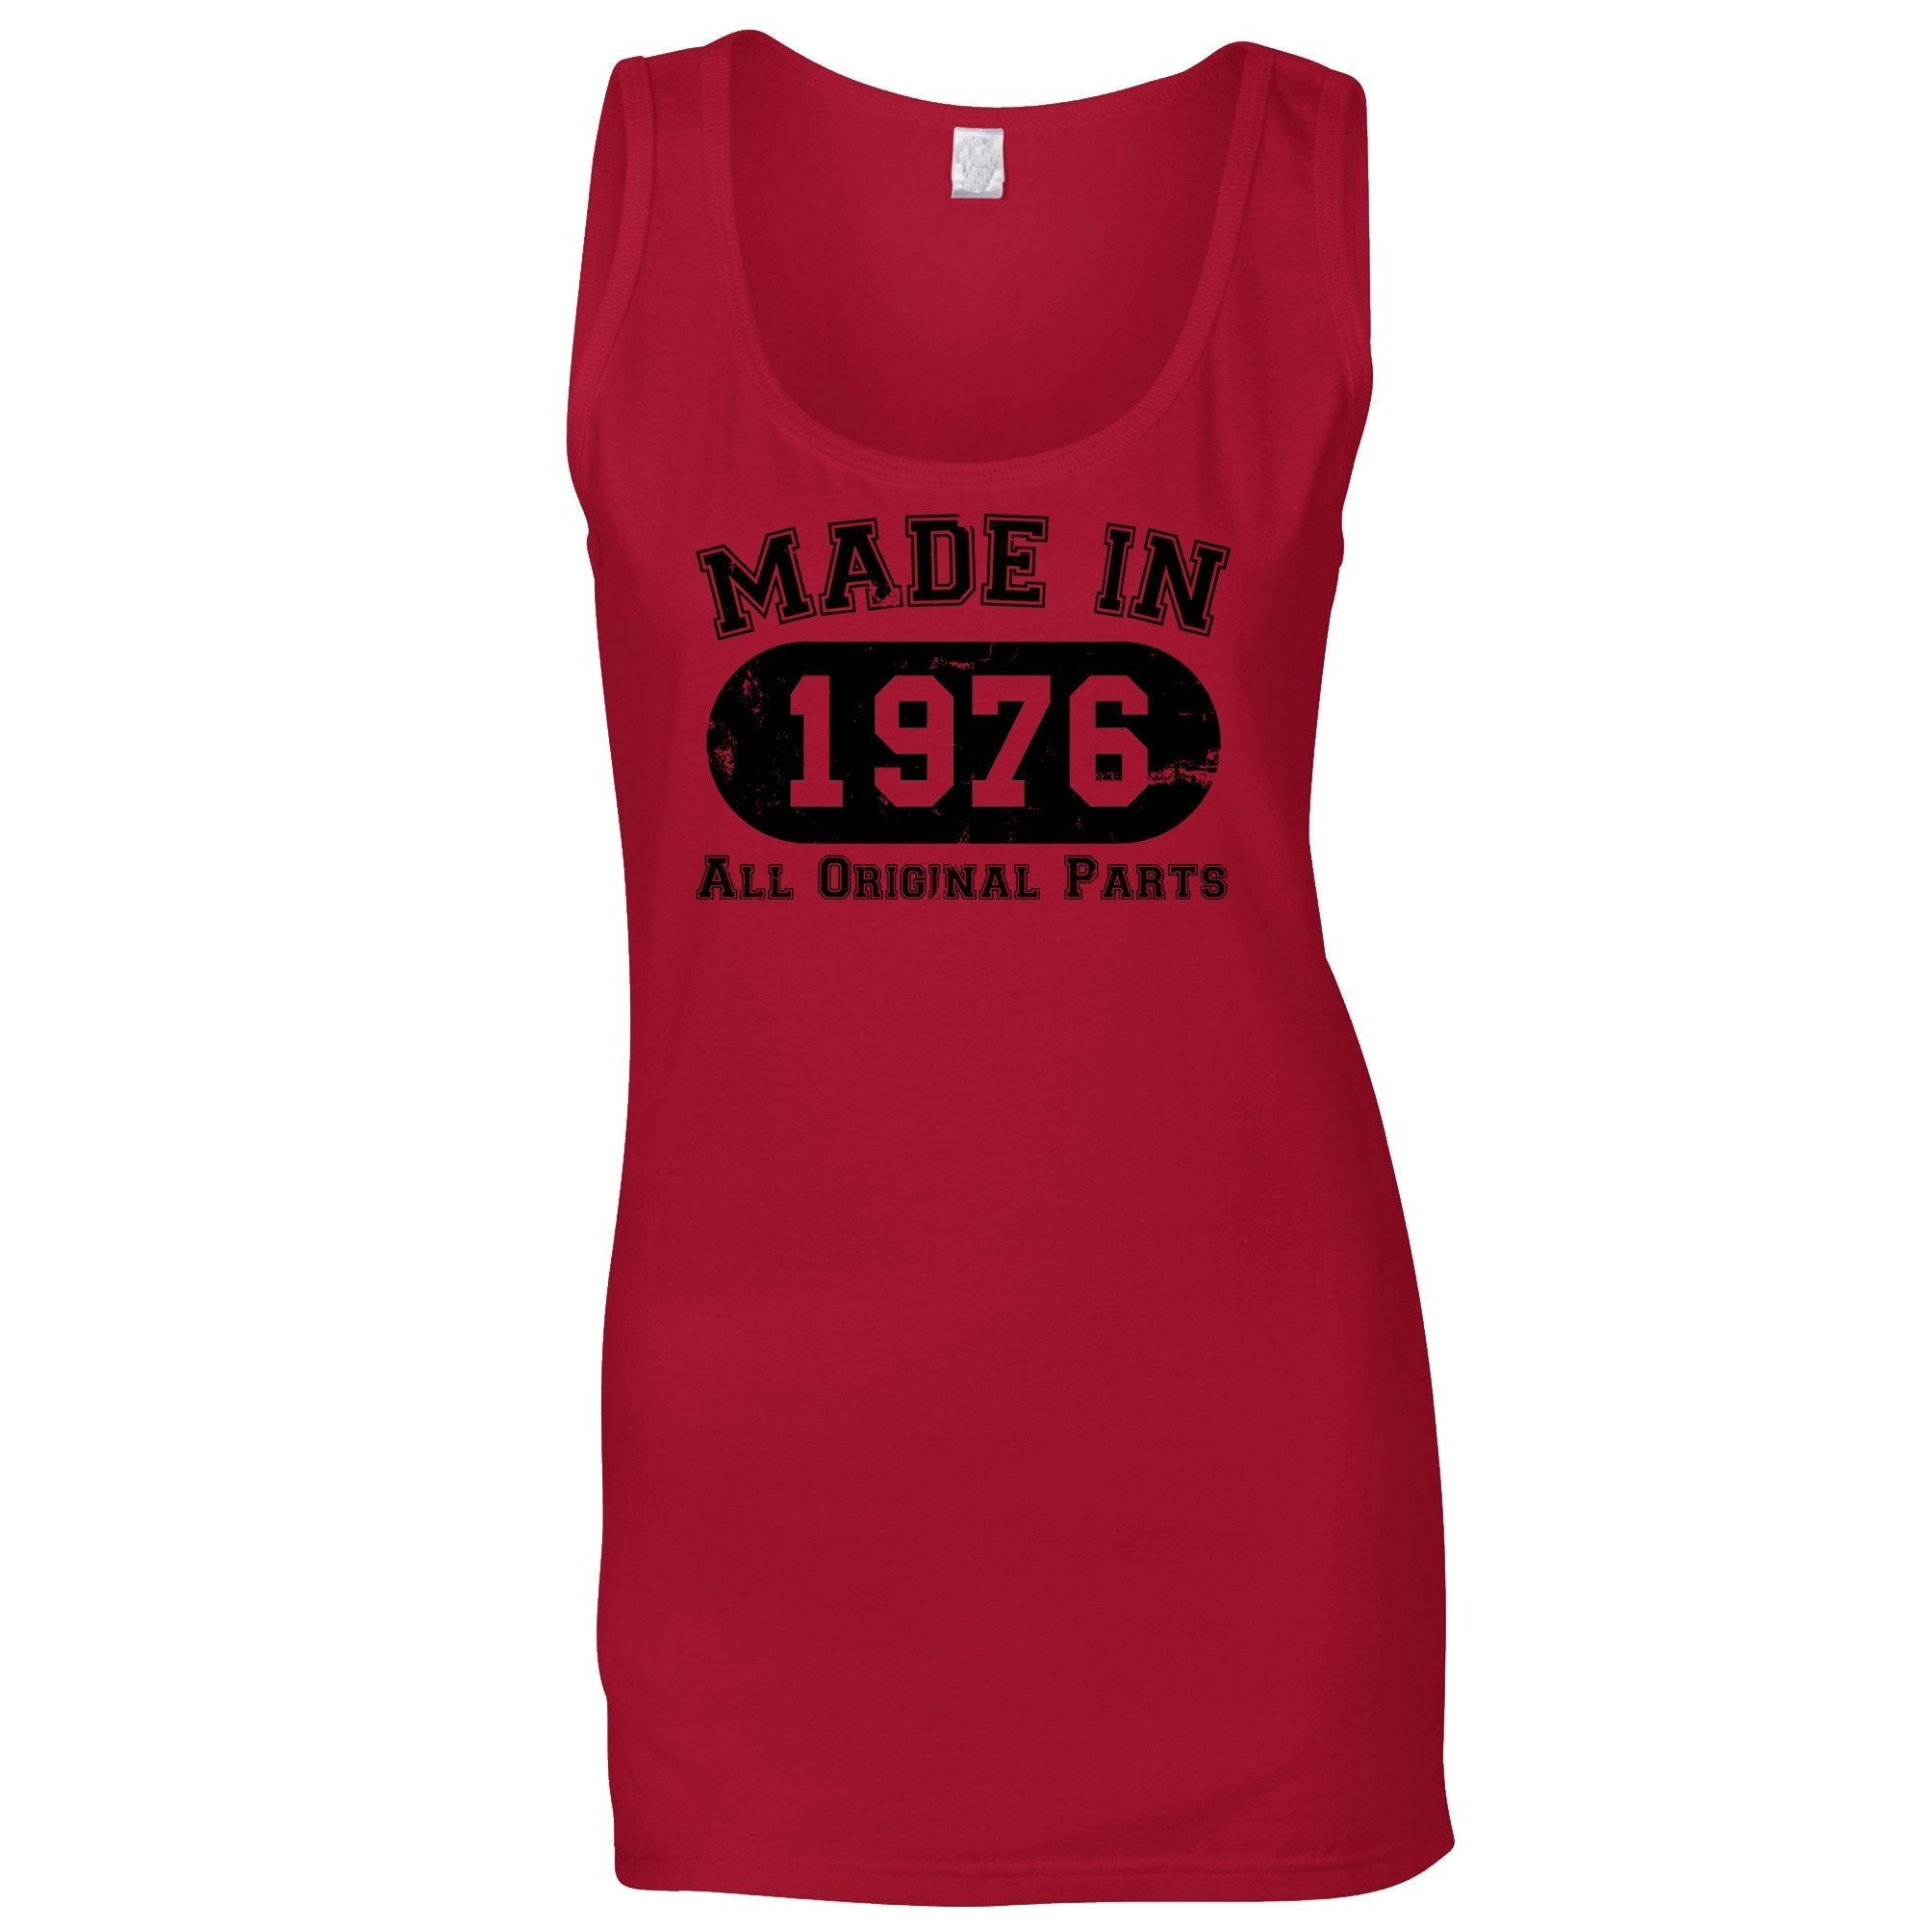 Made in 1976 All Original Parts Womens Vest [Distressed]